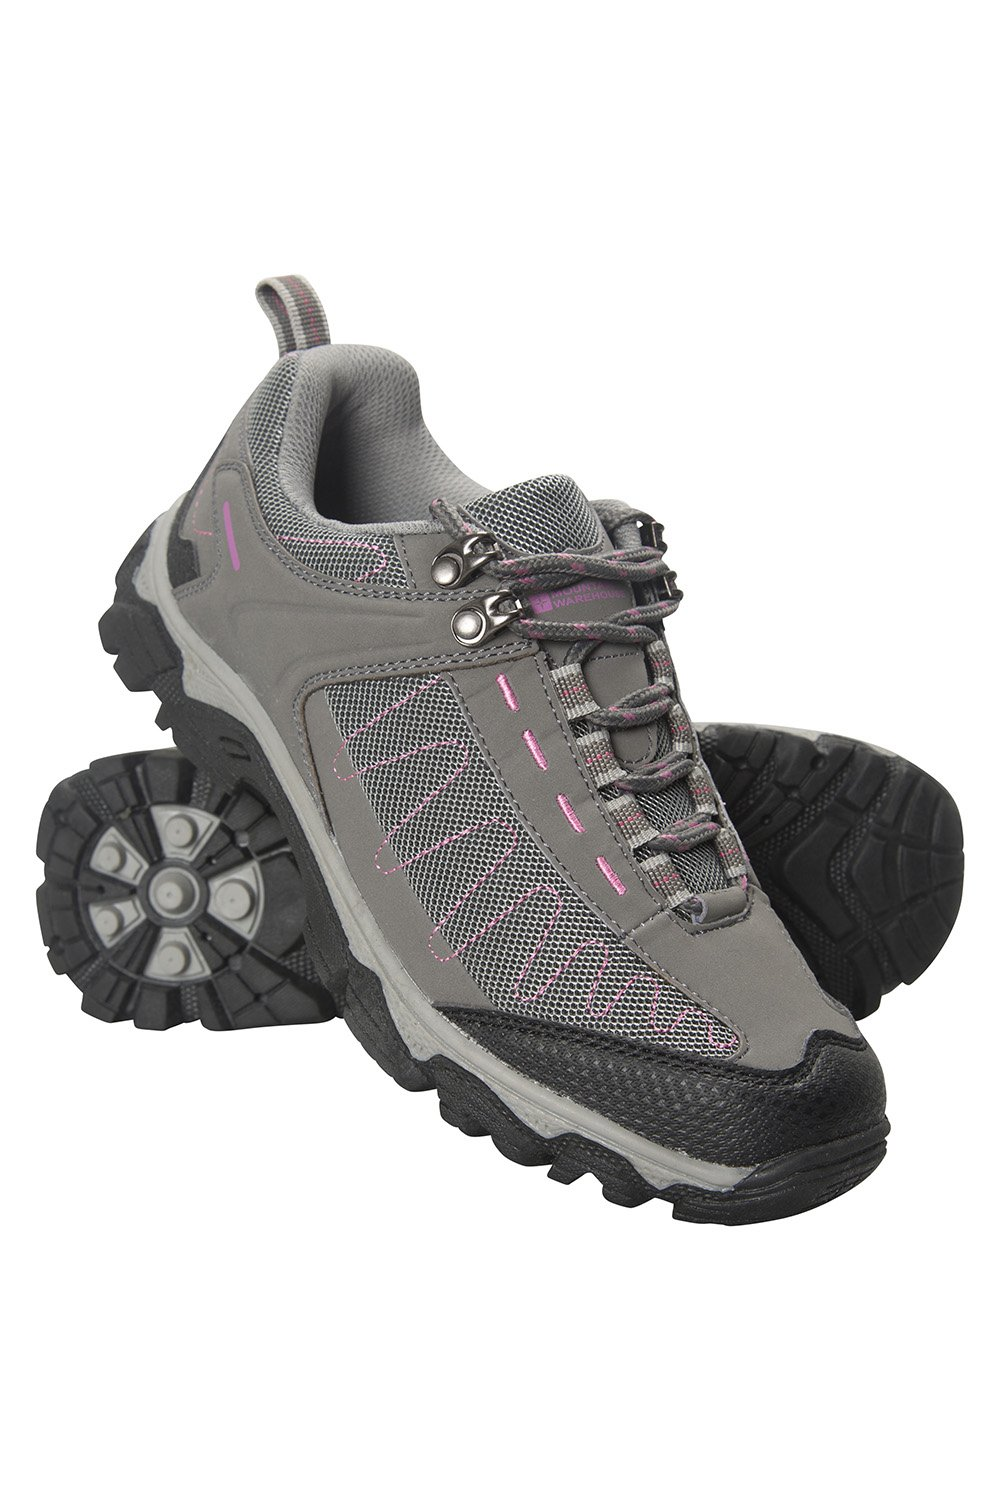 Mountain Warehouse Skyline Womens Walking Shoes - Ladies Hiking Boots 022079024007